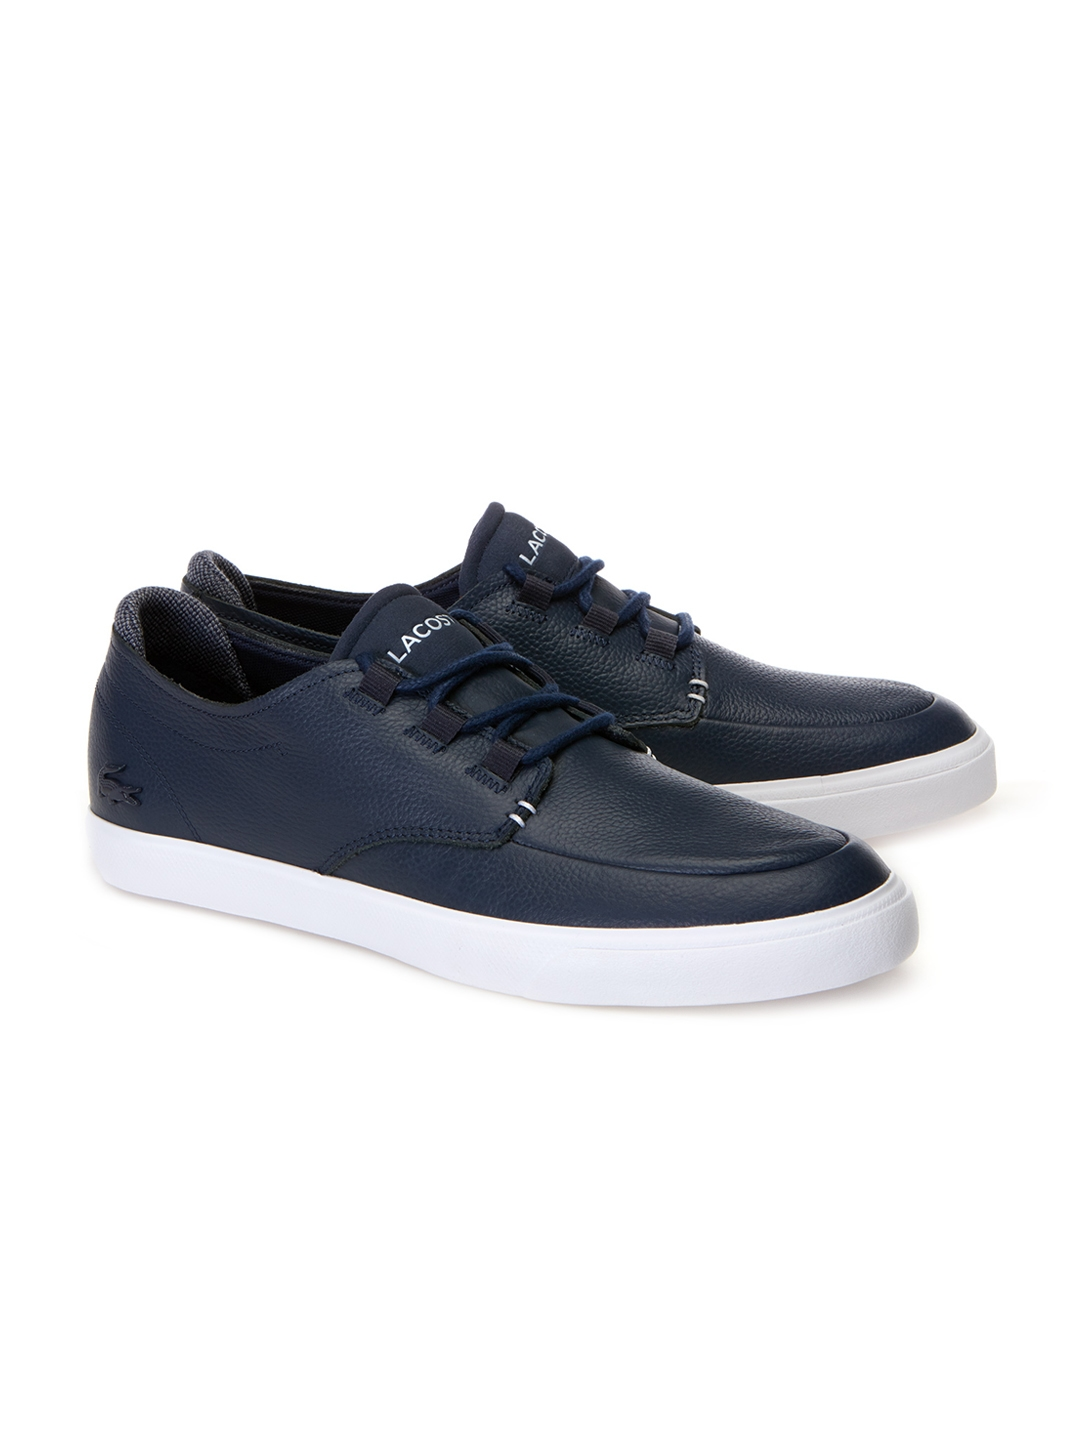 ab56f7b54 Buy Lacoste Men Navy Blue Leather Sneakers - Casual Shoes for Men ...